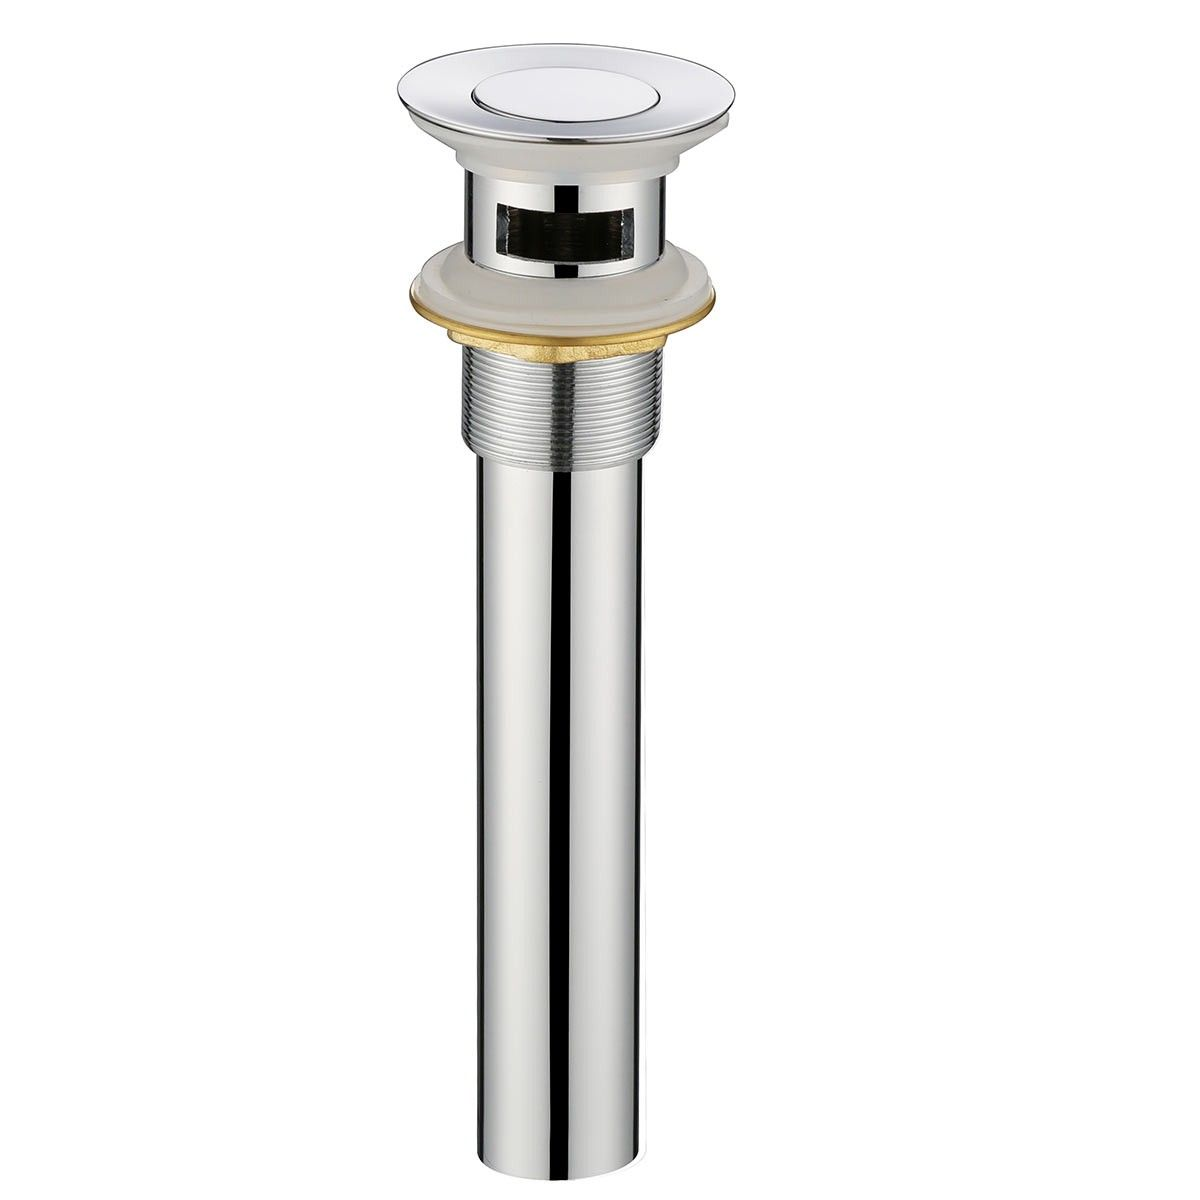 Brass Rotating Top Sink Drain (P320)